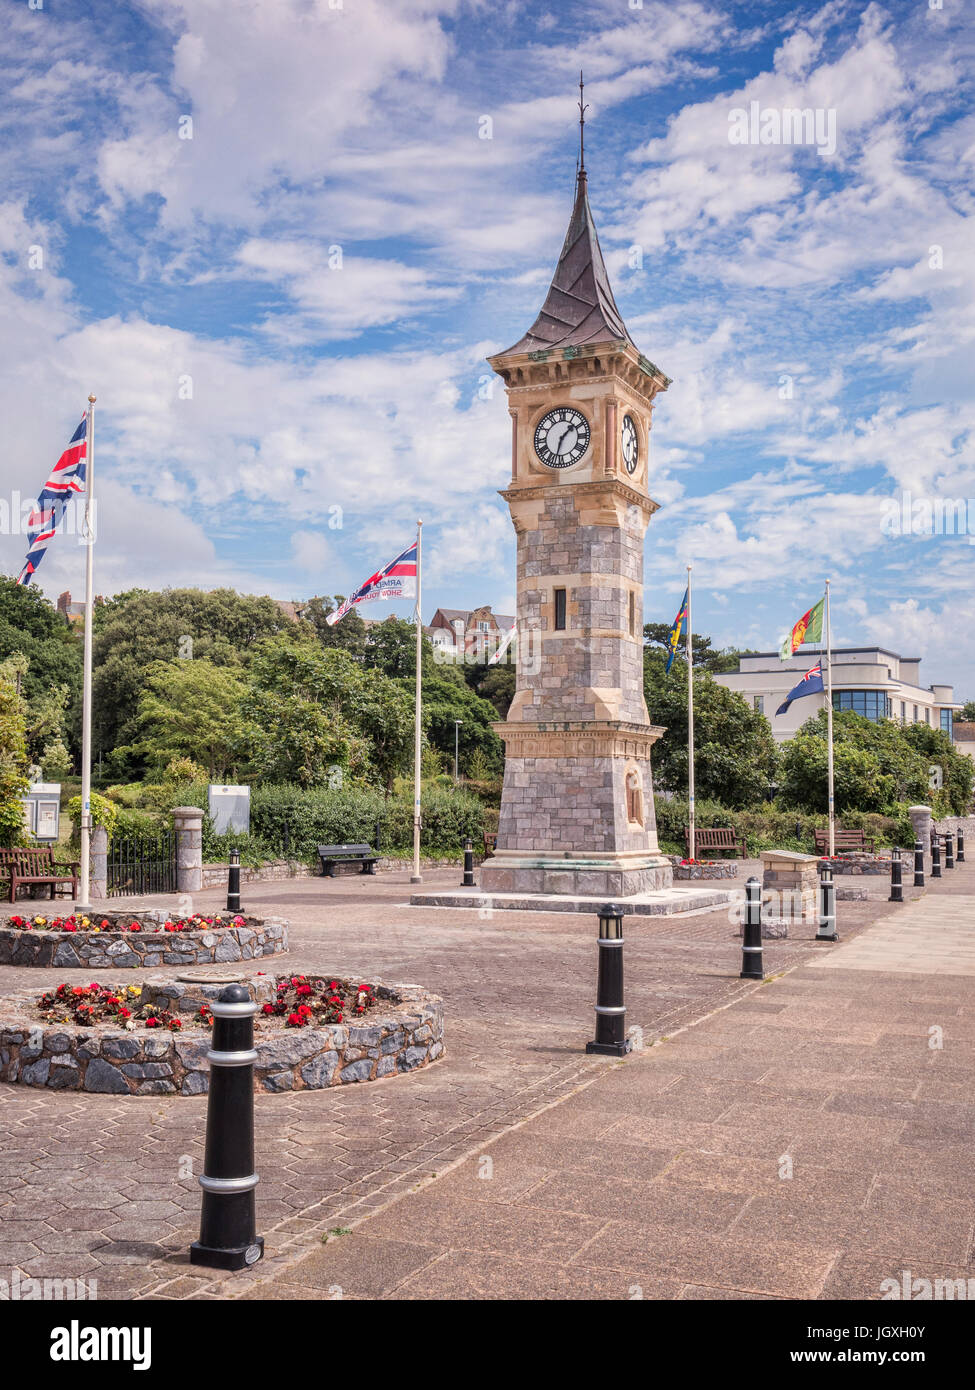 26 June 2017: Exmouth, Devon, UK - The Jubilee Clock Tower on the Esplanade at Exmouth, Devon, with flags flying - Stock Image